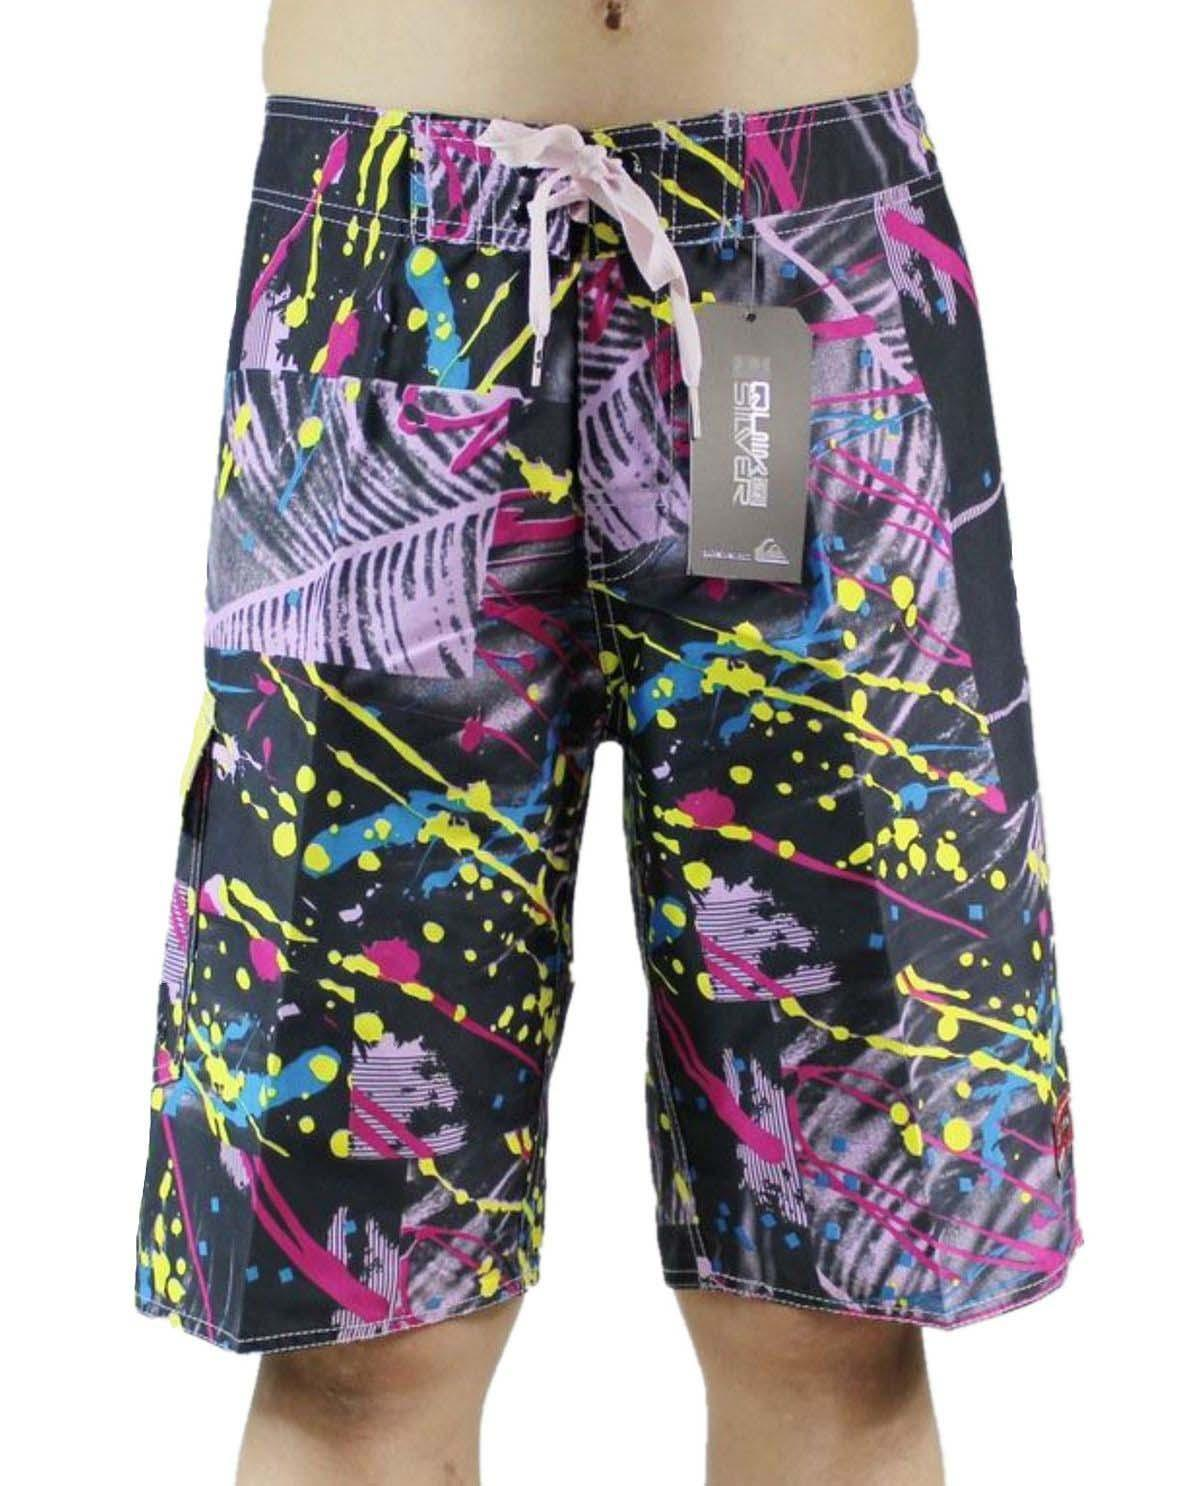 High Quality Polyester Relaxed Bermudas Shorts Mens Board Shorts Beachshorts Swimming Trunks Swimwear Swim Trunks Quick Dry Surf Pants NEW